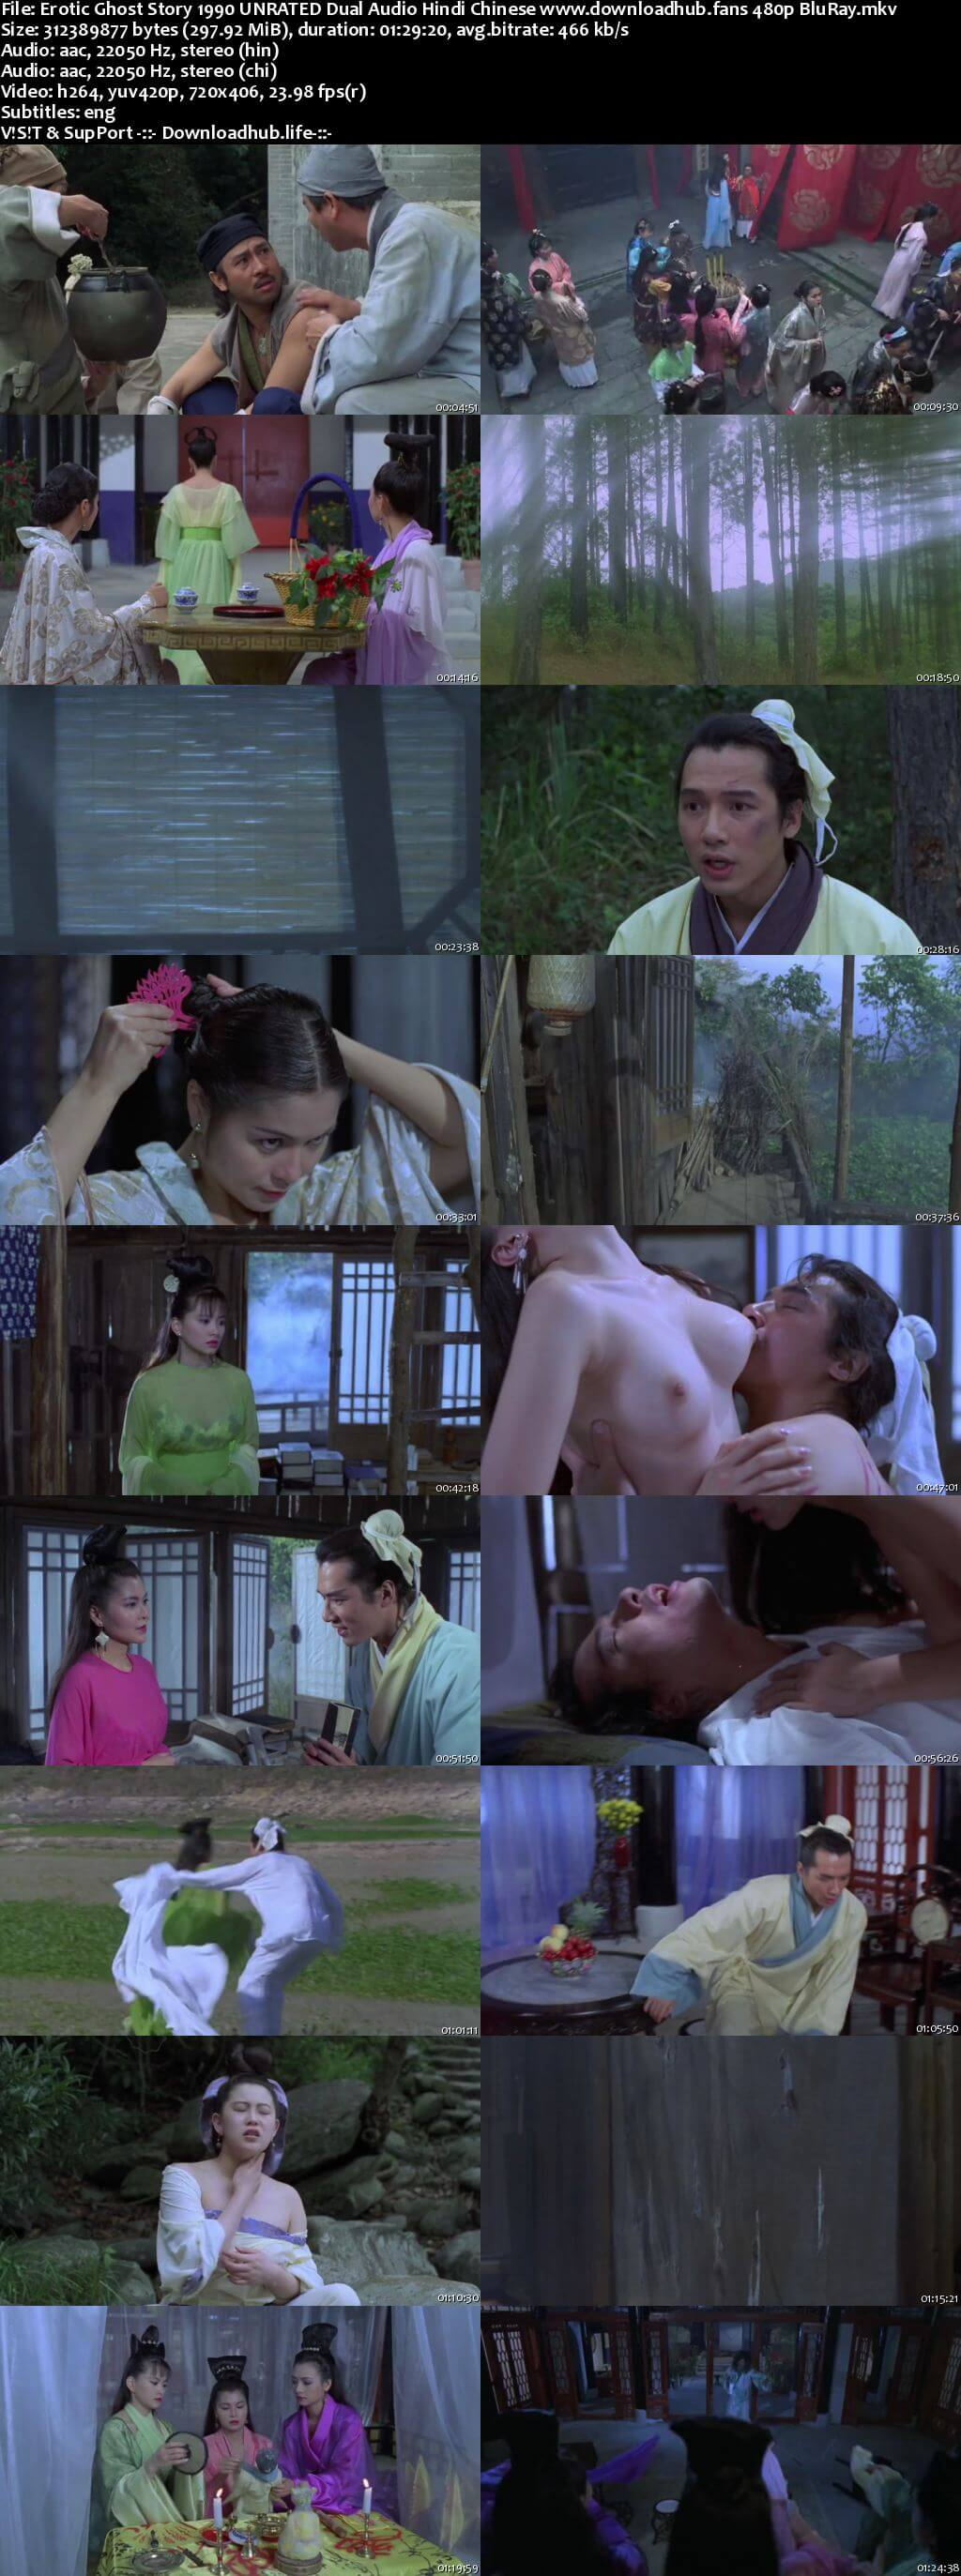 Erotic Ghost Story 1990 Hindi Dual Audio 300MB UNRATED BluRay 480p ESubs